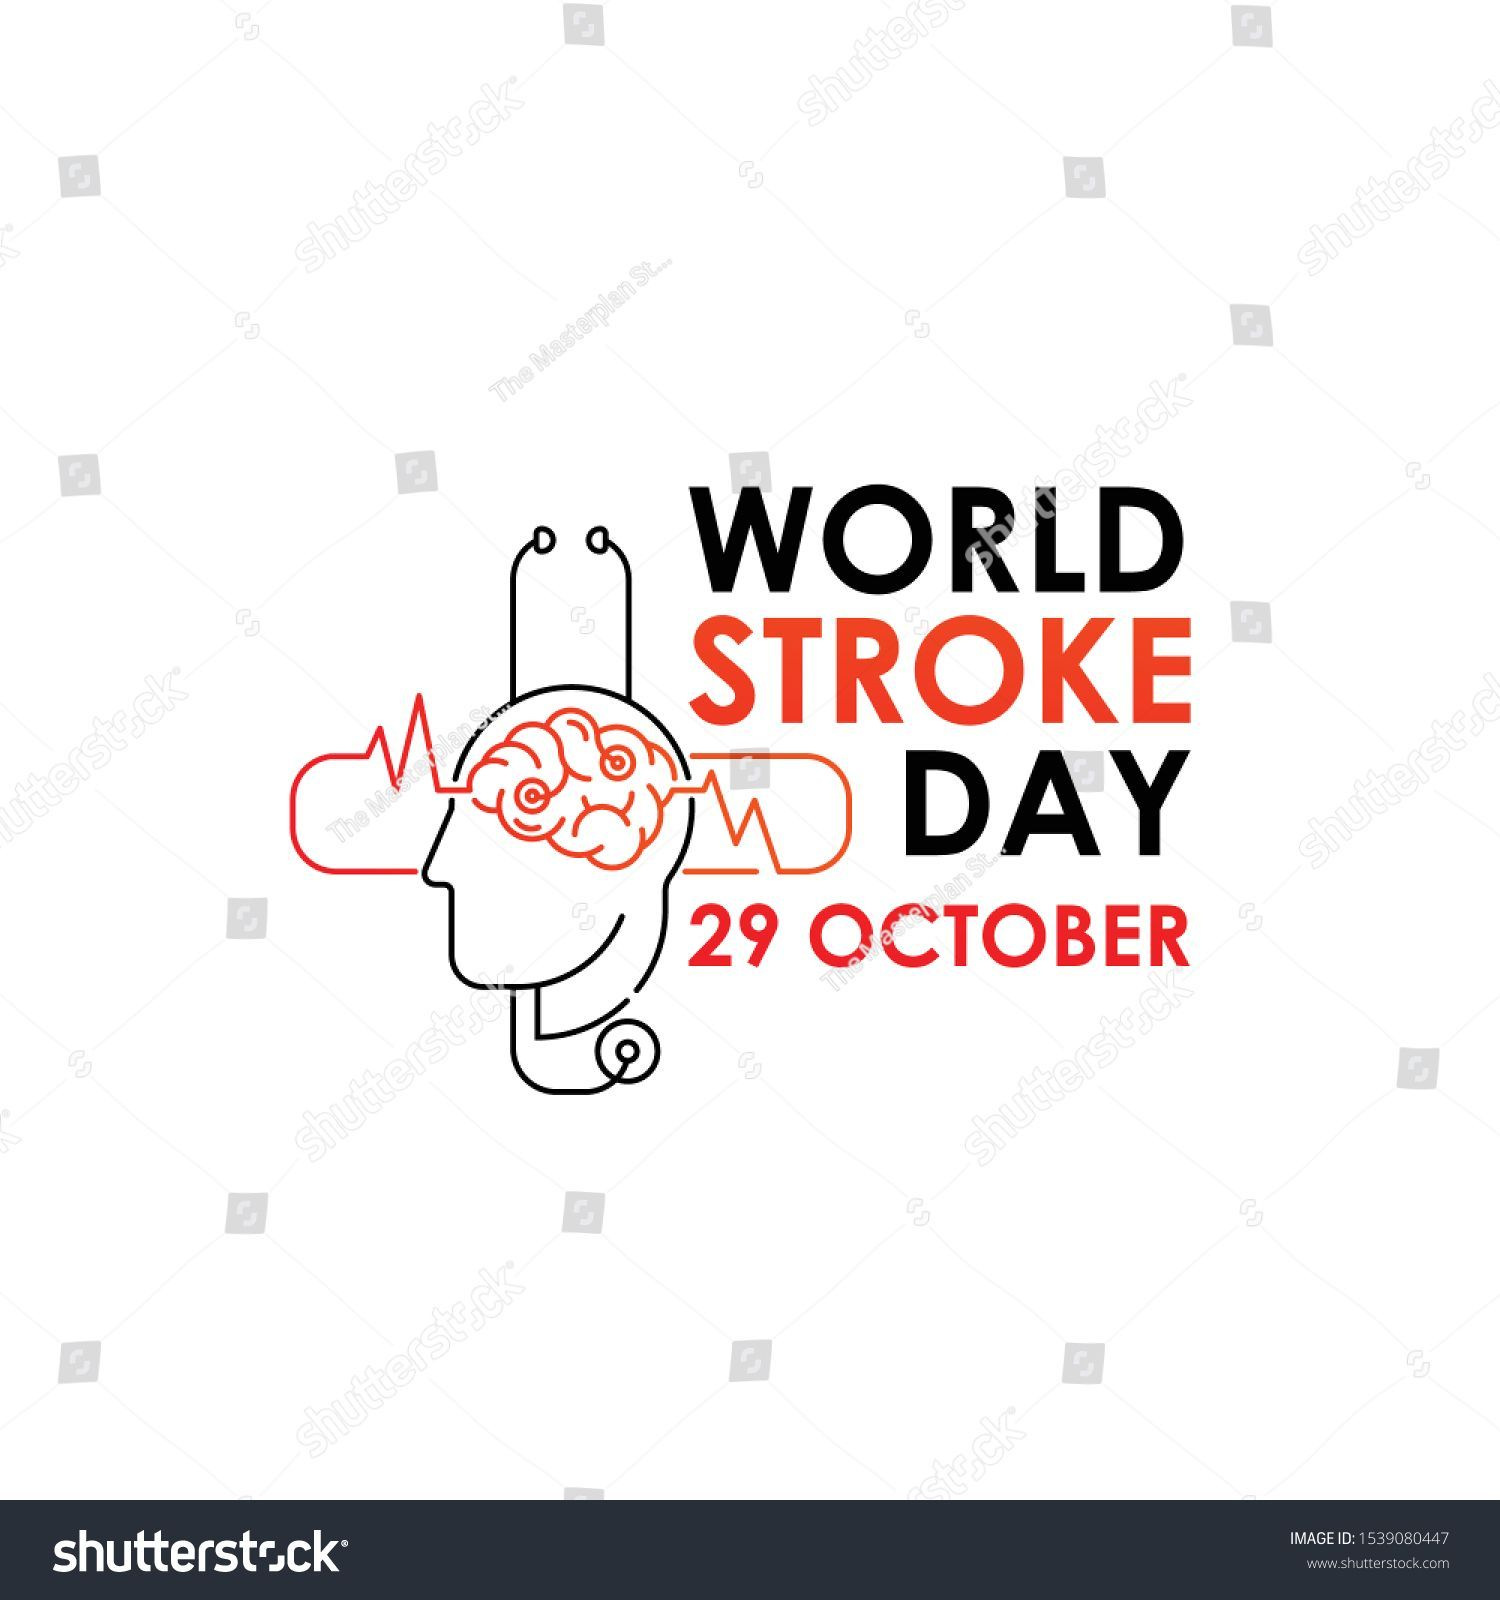 World Stroke Day Vector Logo Poster Illustration Des Weltschlags Am Oktobe World Stroke Day Vector Logo Poster